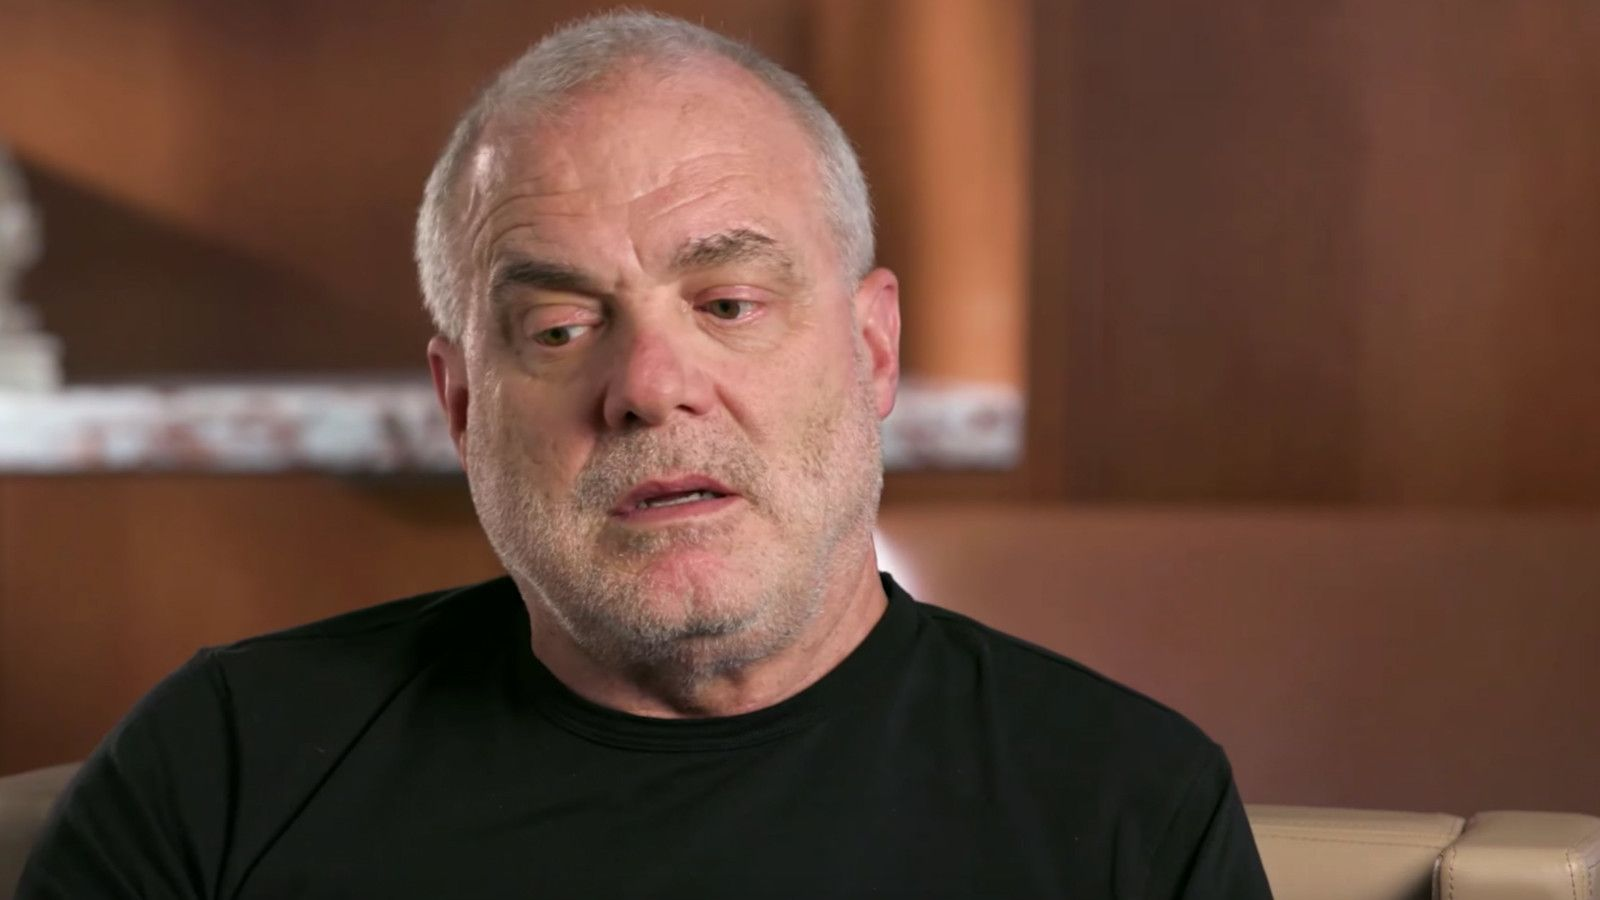 U.S. Judge Finds That Aetna Deceived the Public About Its